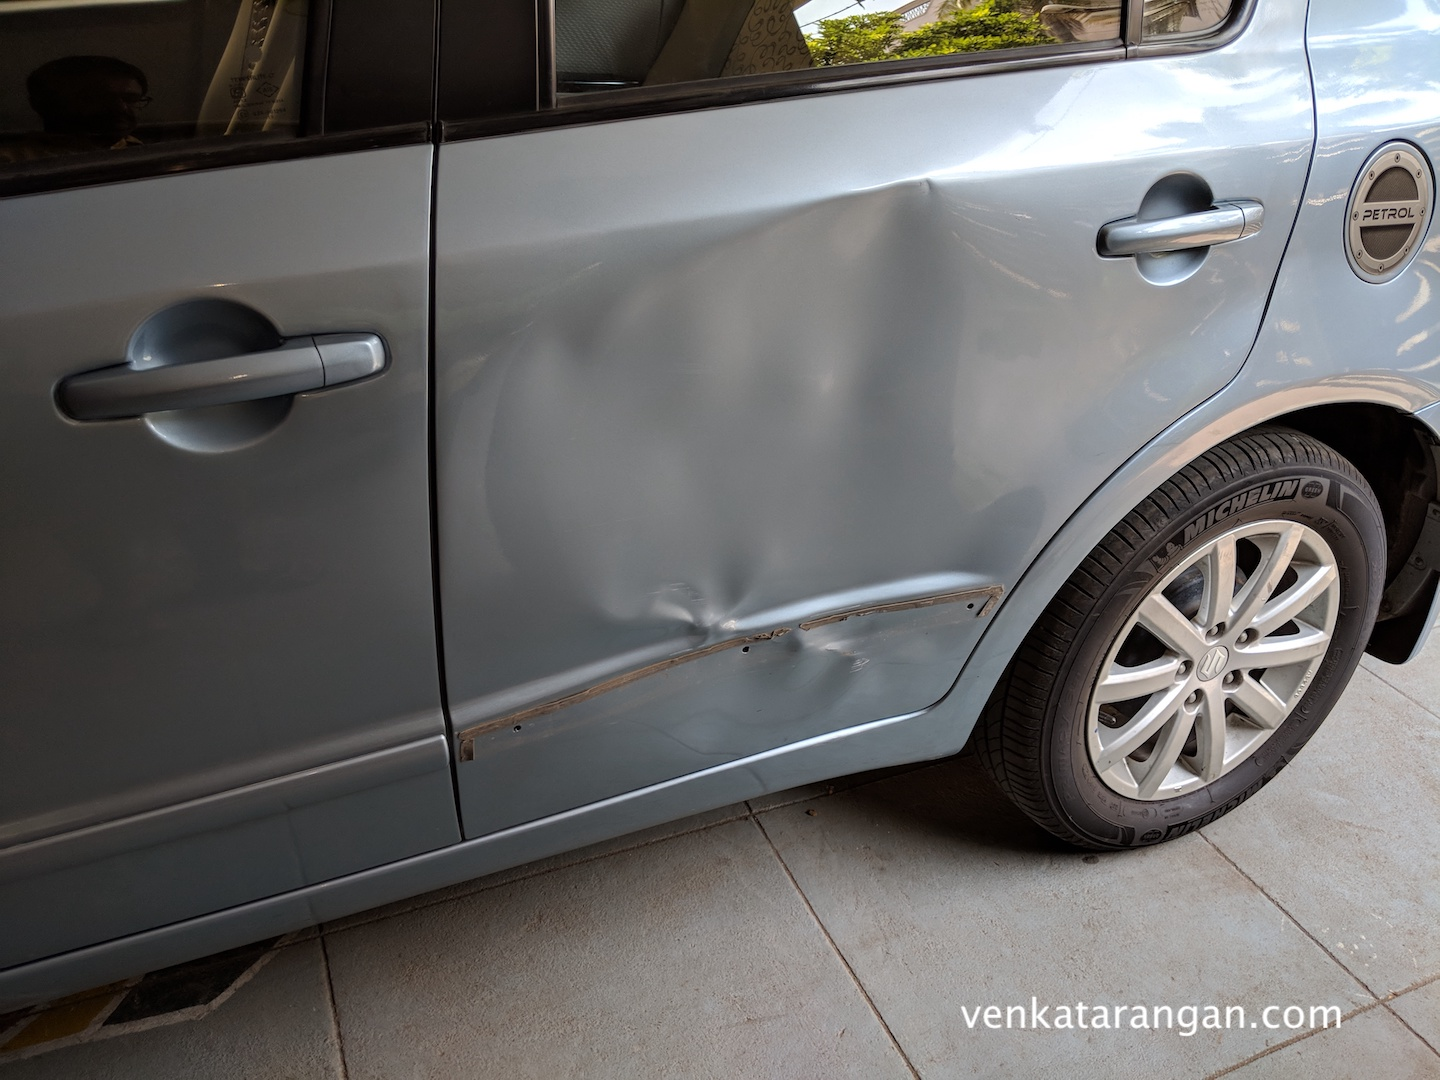 Car door that was damaged while left with valet parking